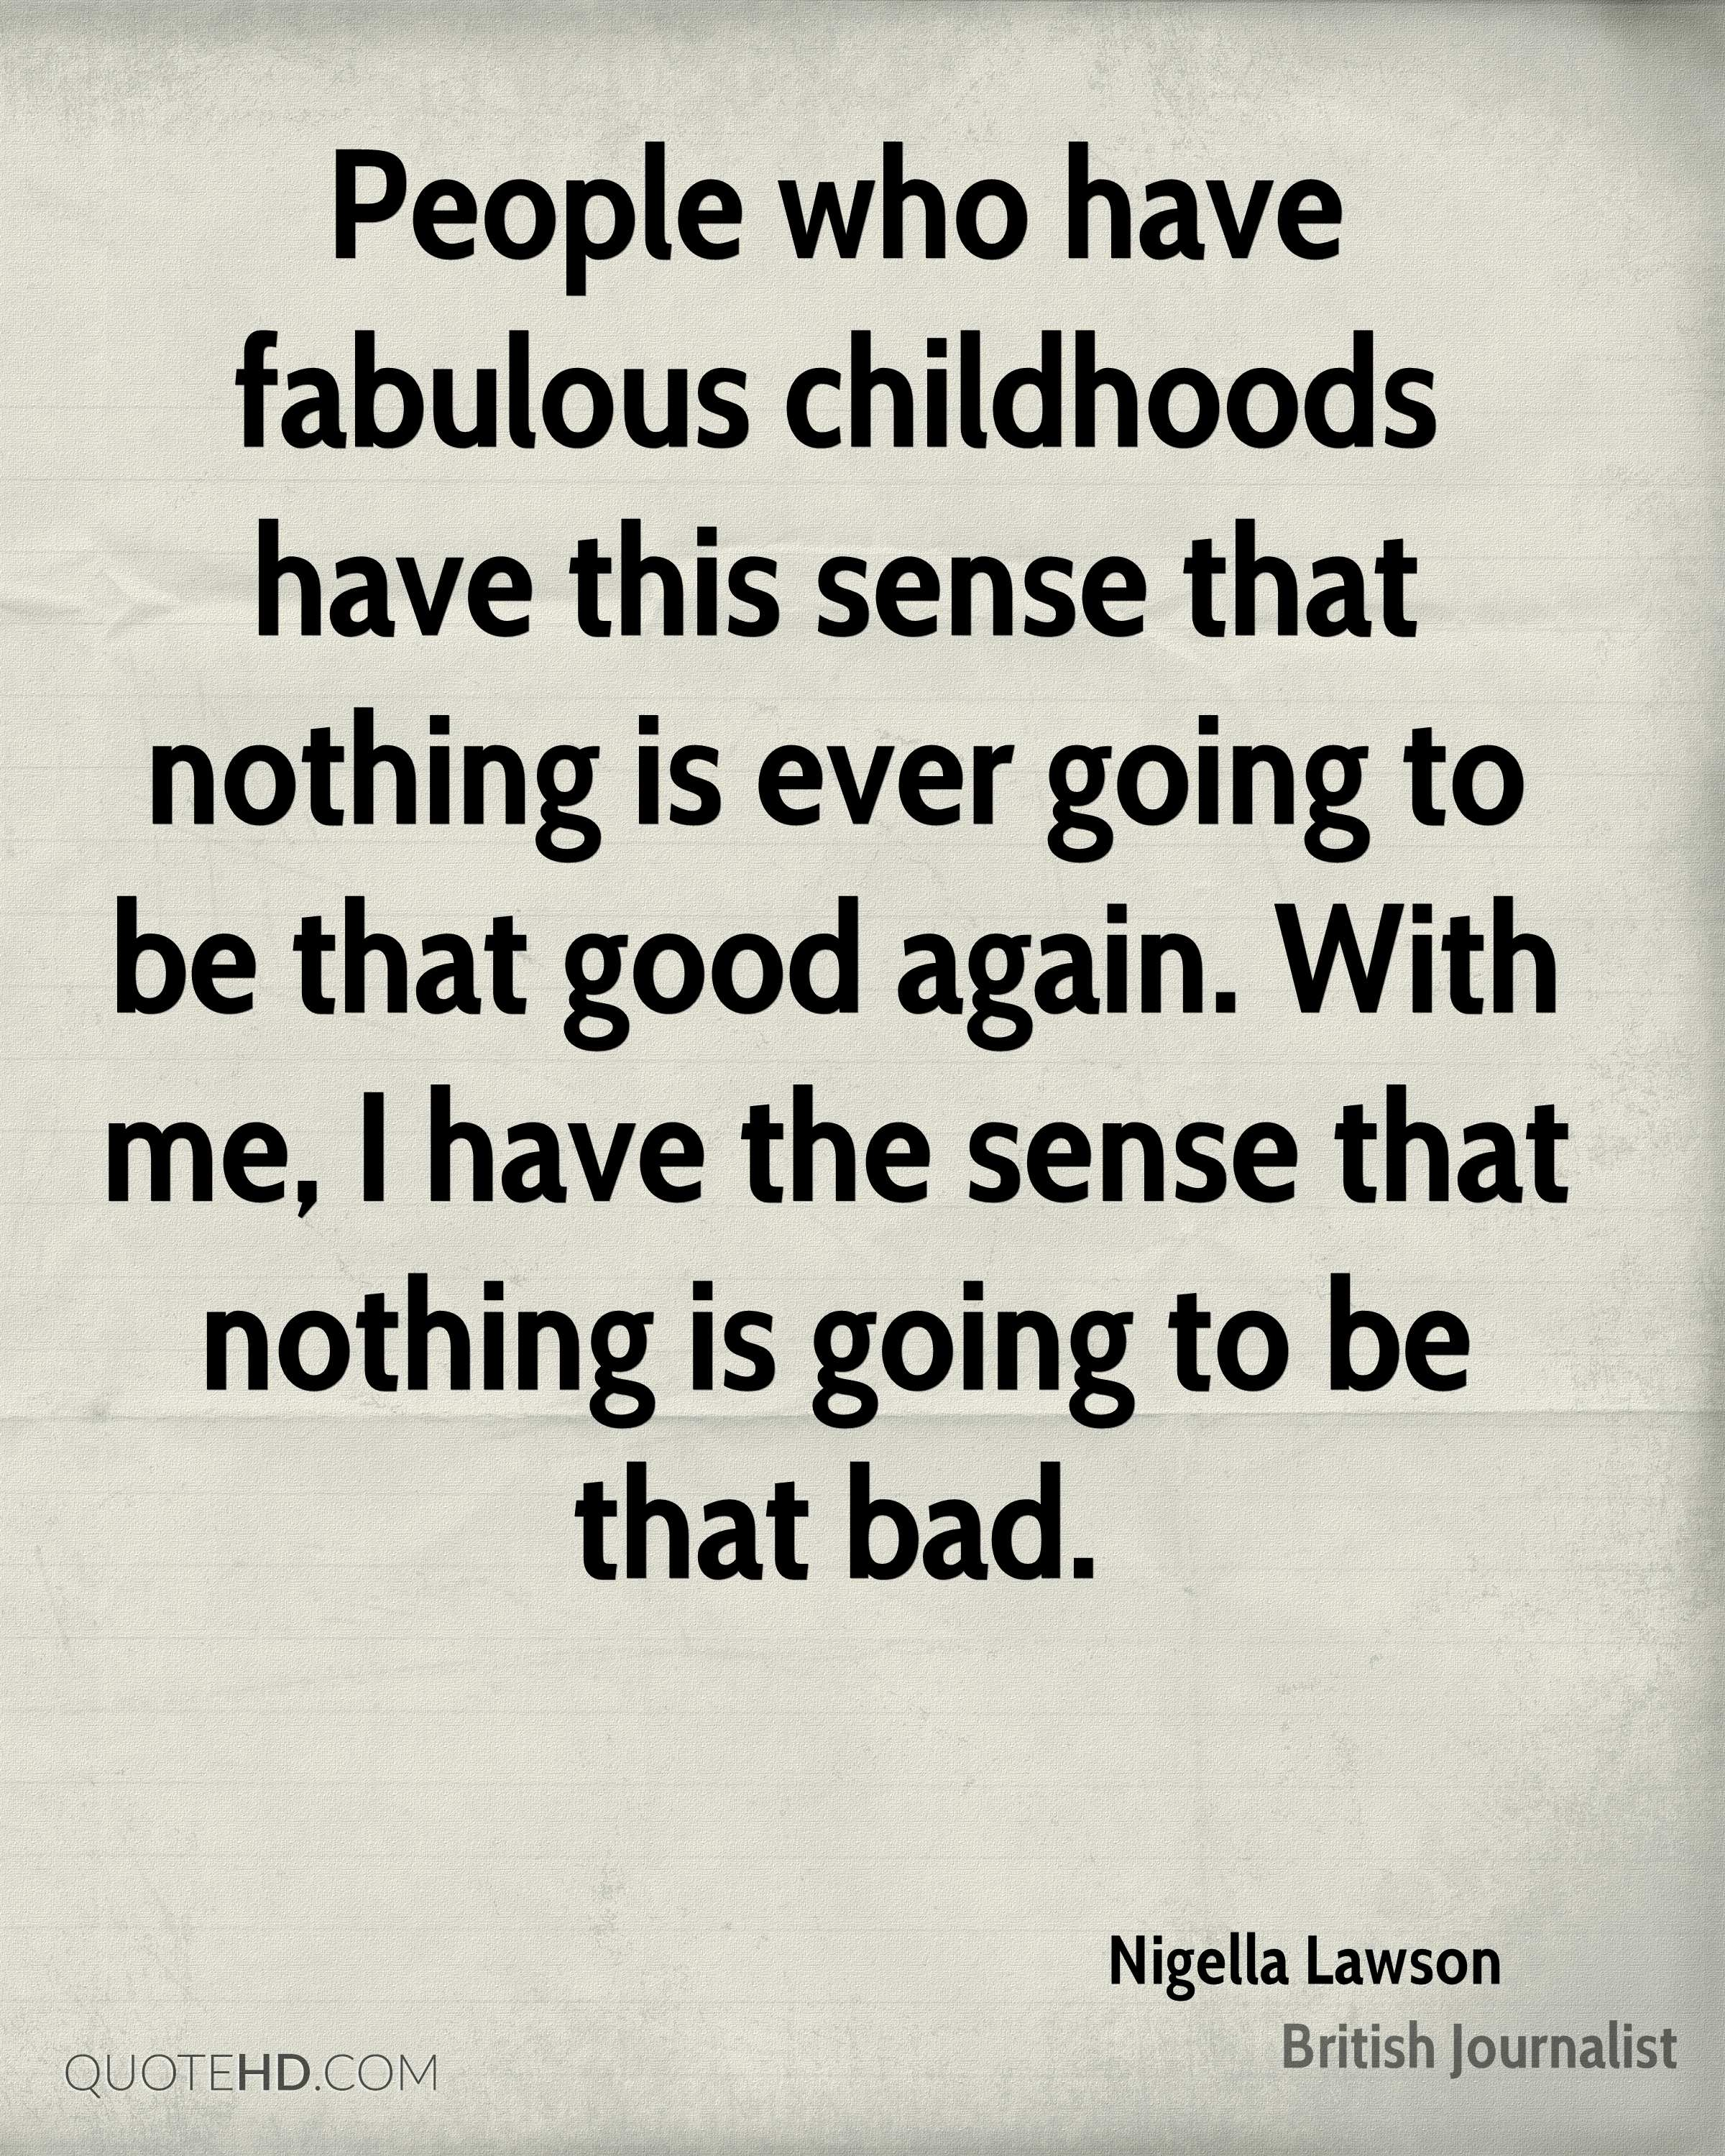 People who have fabulous childhoods have this sense that nothing is ever going to be that good again. With me, I have the sense that nothing is going to be that bad.